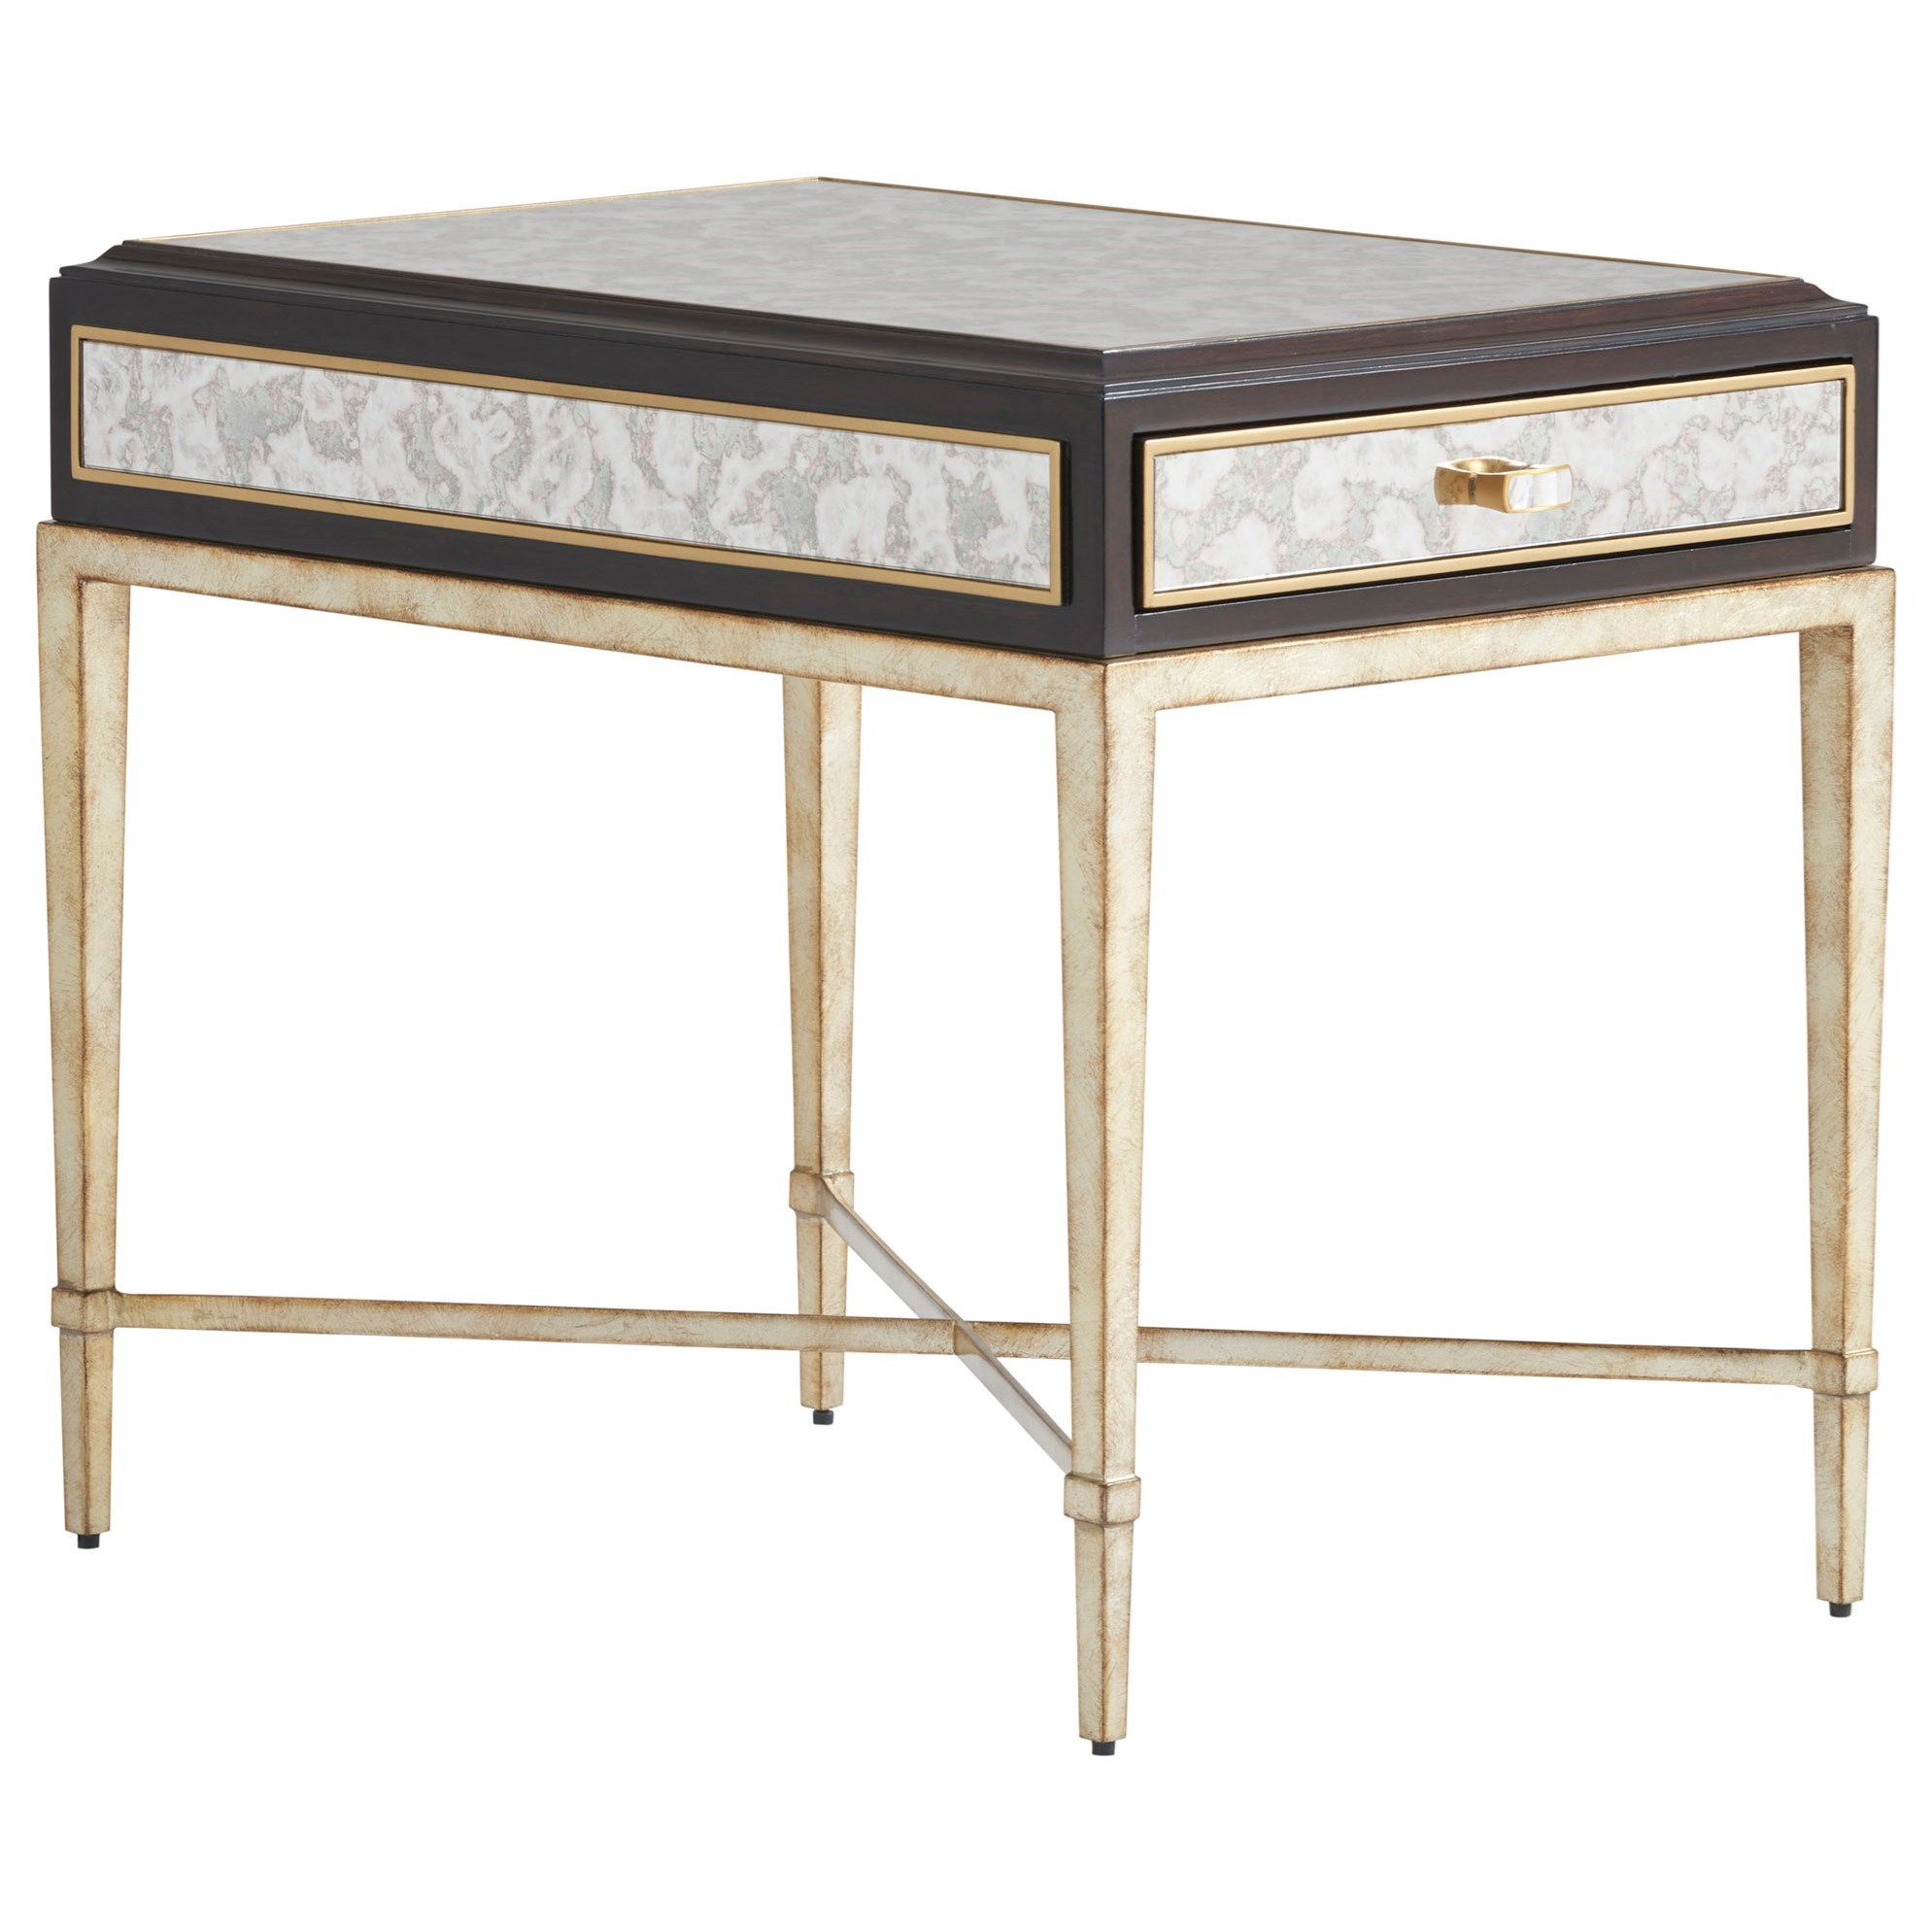 Carlyle Millbrook End Table by Lexington at Baer's Furniture